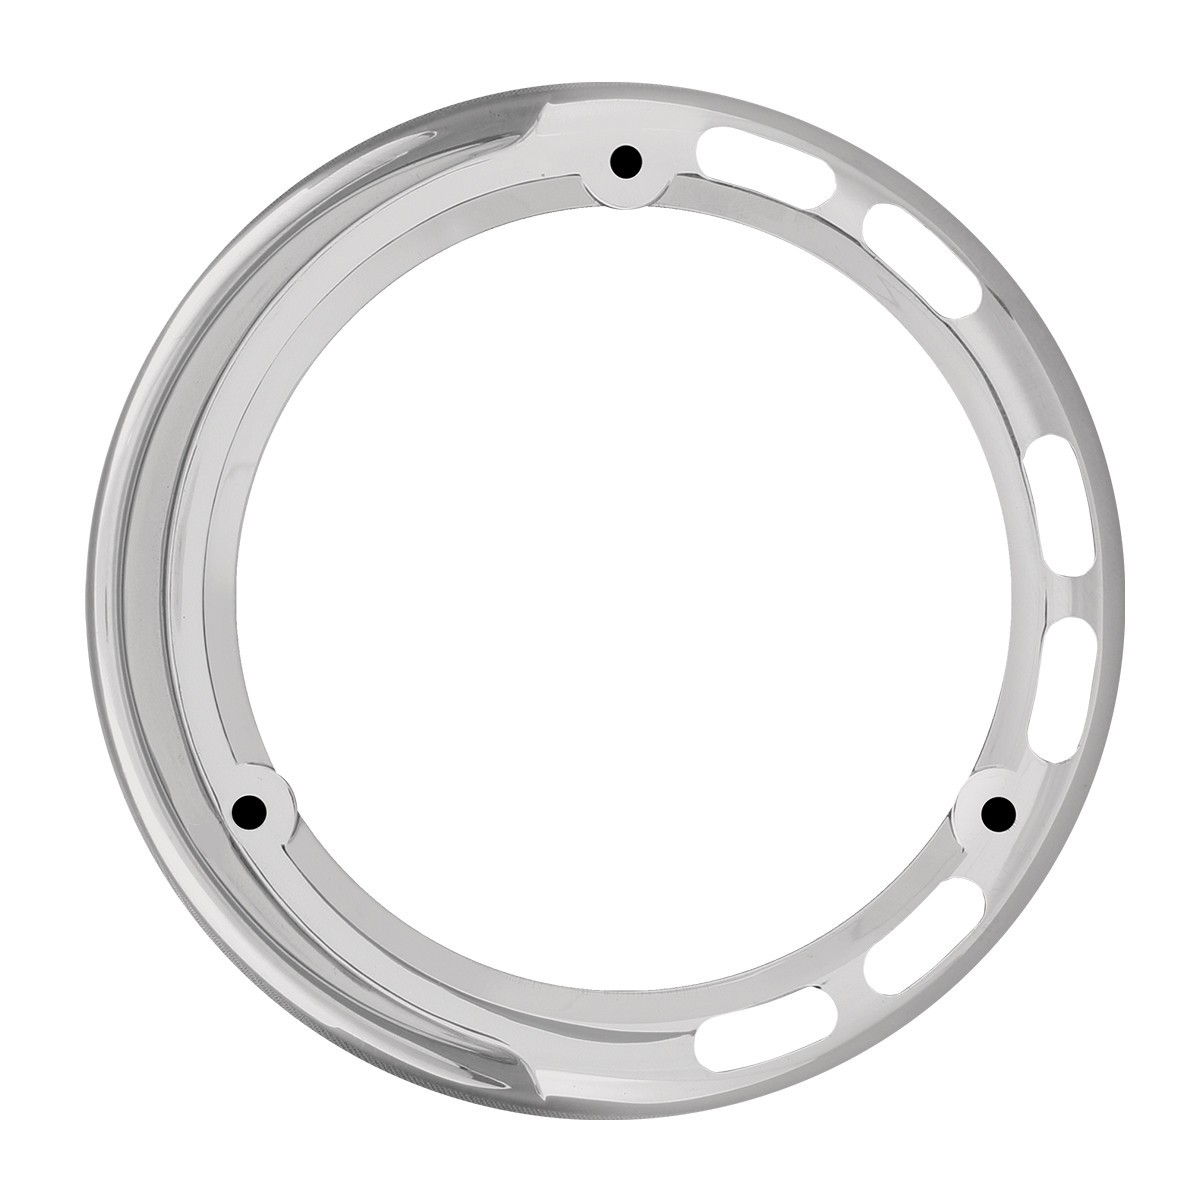 "78367 Chrome Plastic Bezel w/ Visor for 4"" Pearl LED Pedestal Lights"